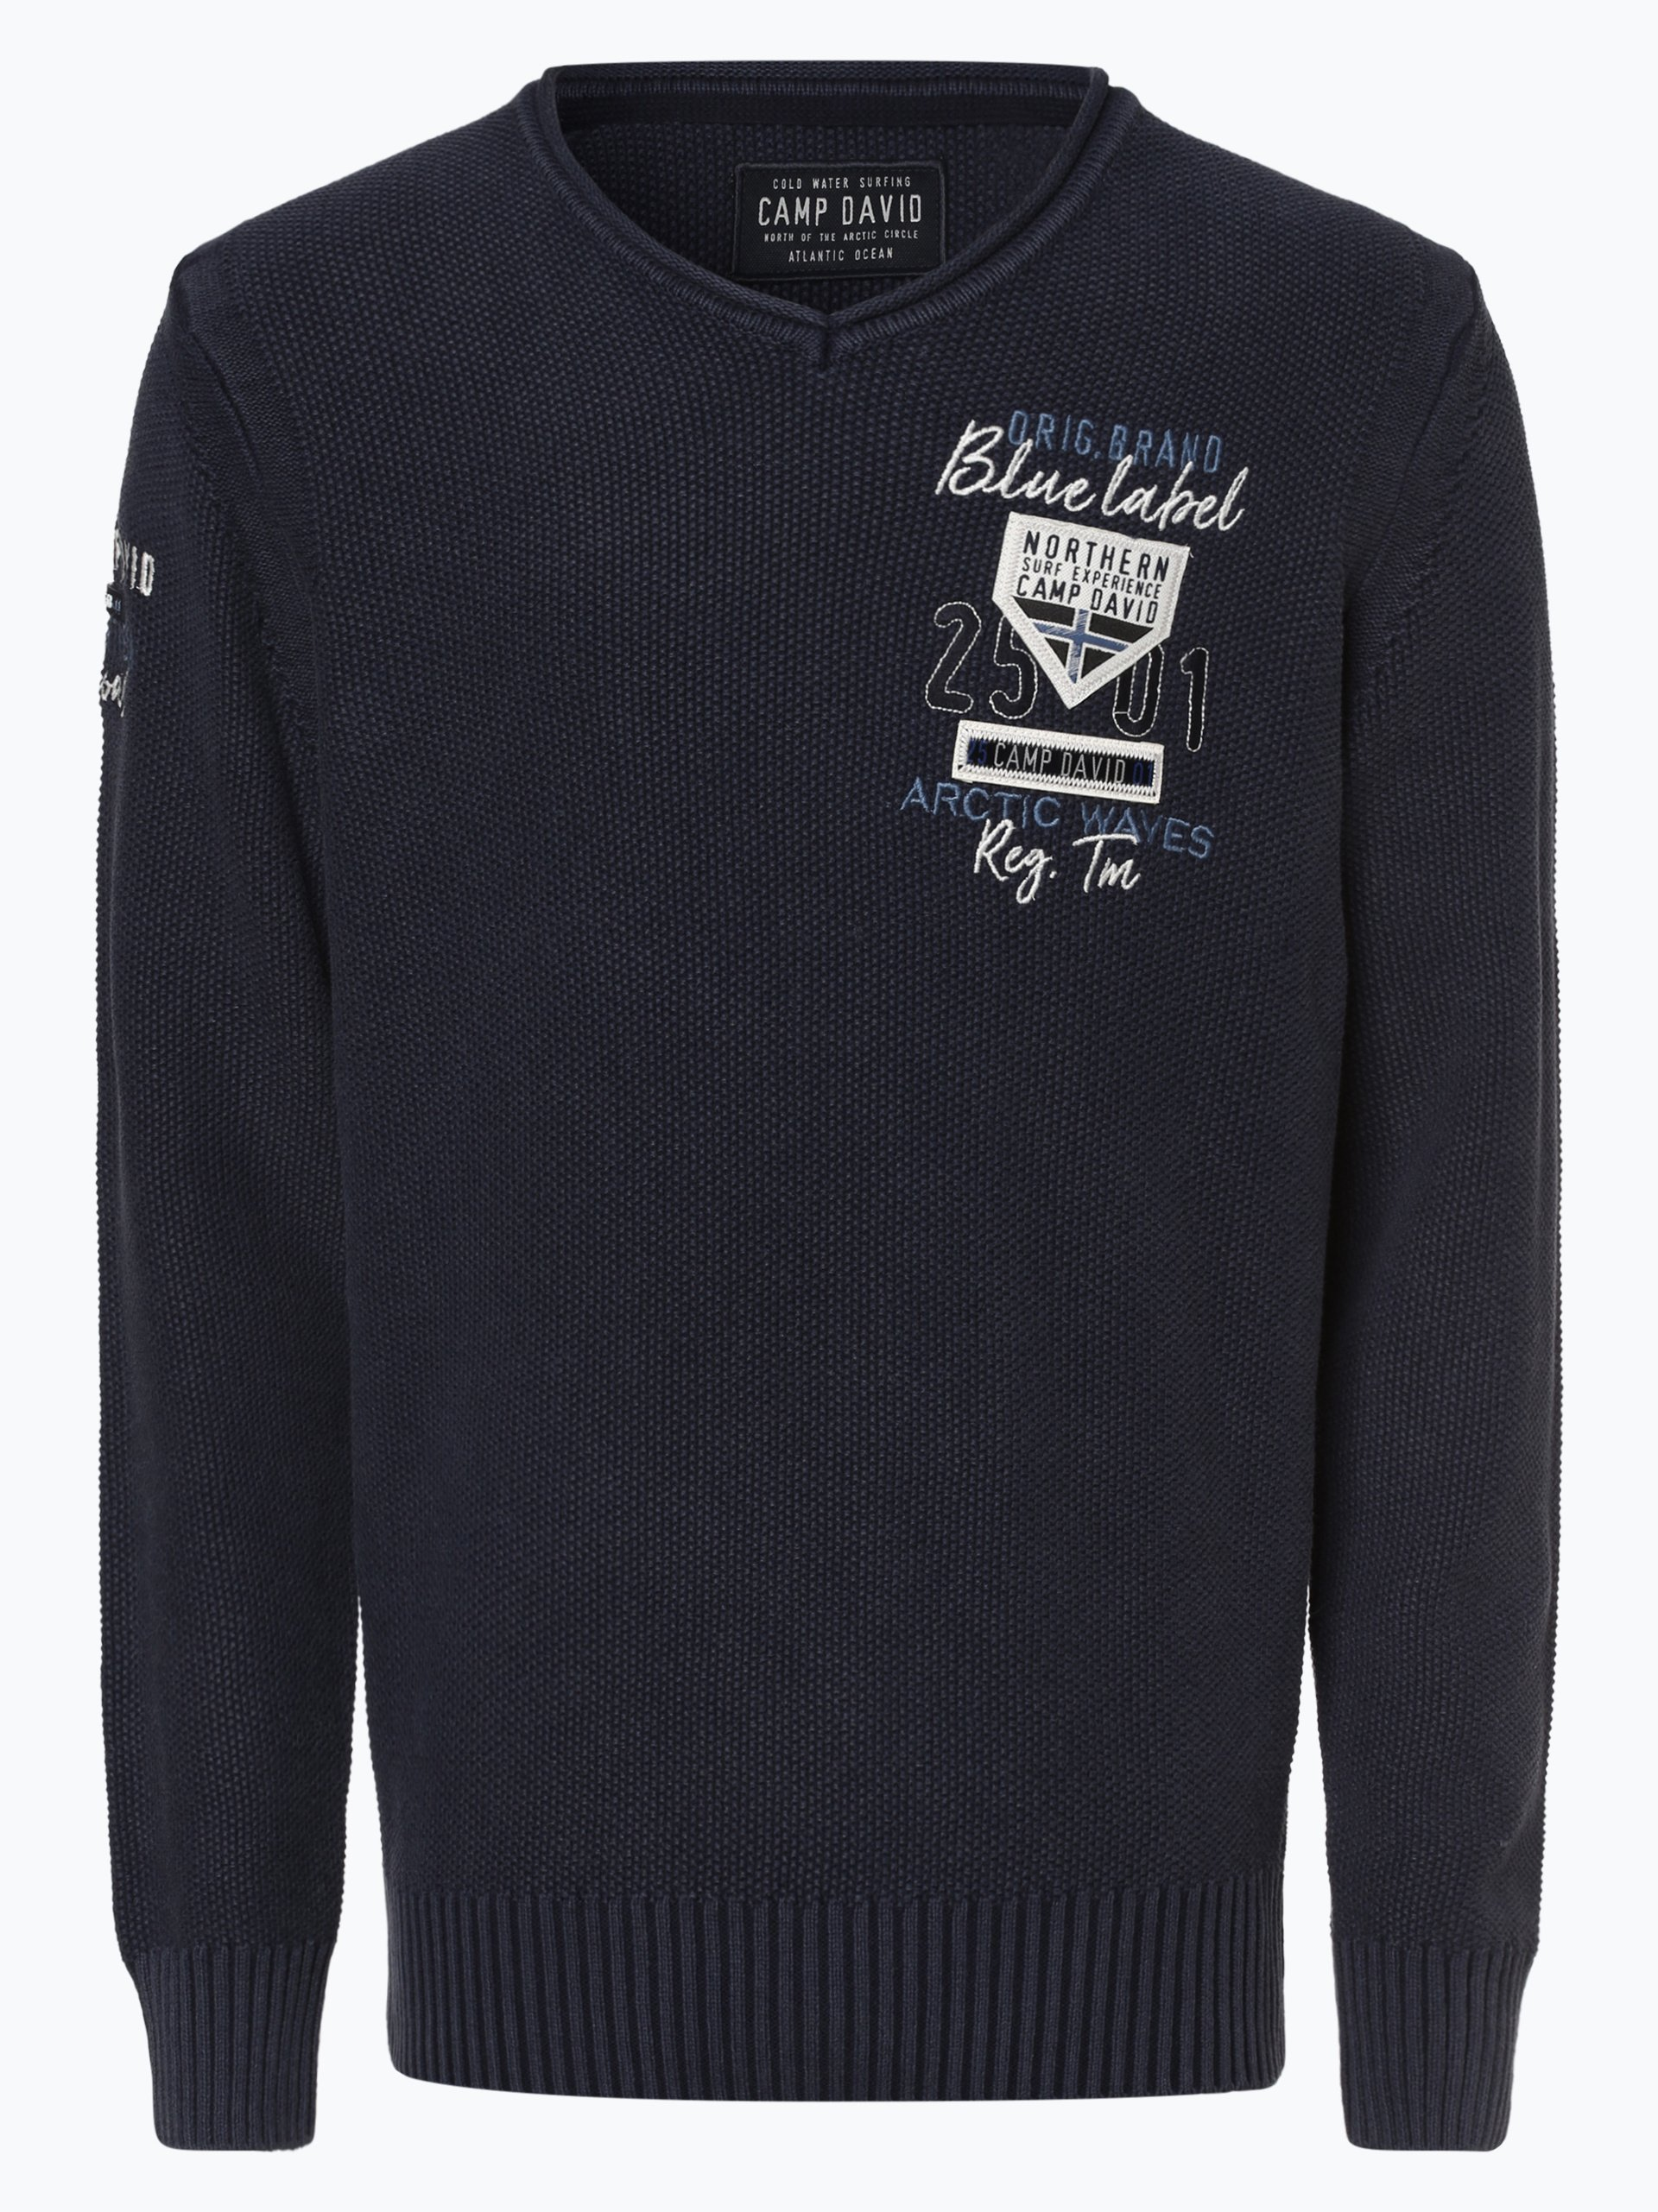 Camp David Herren Pullover